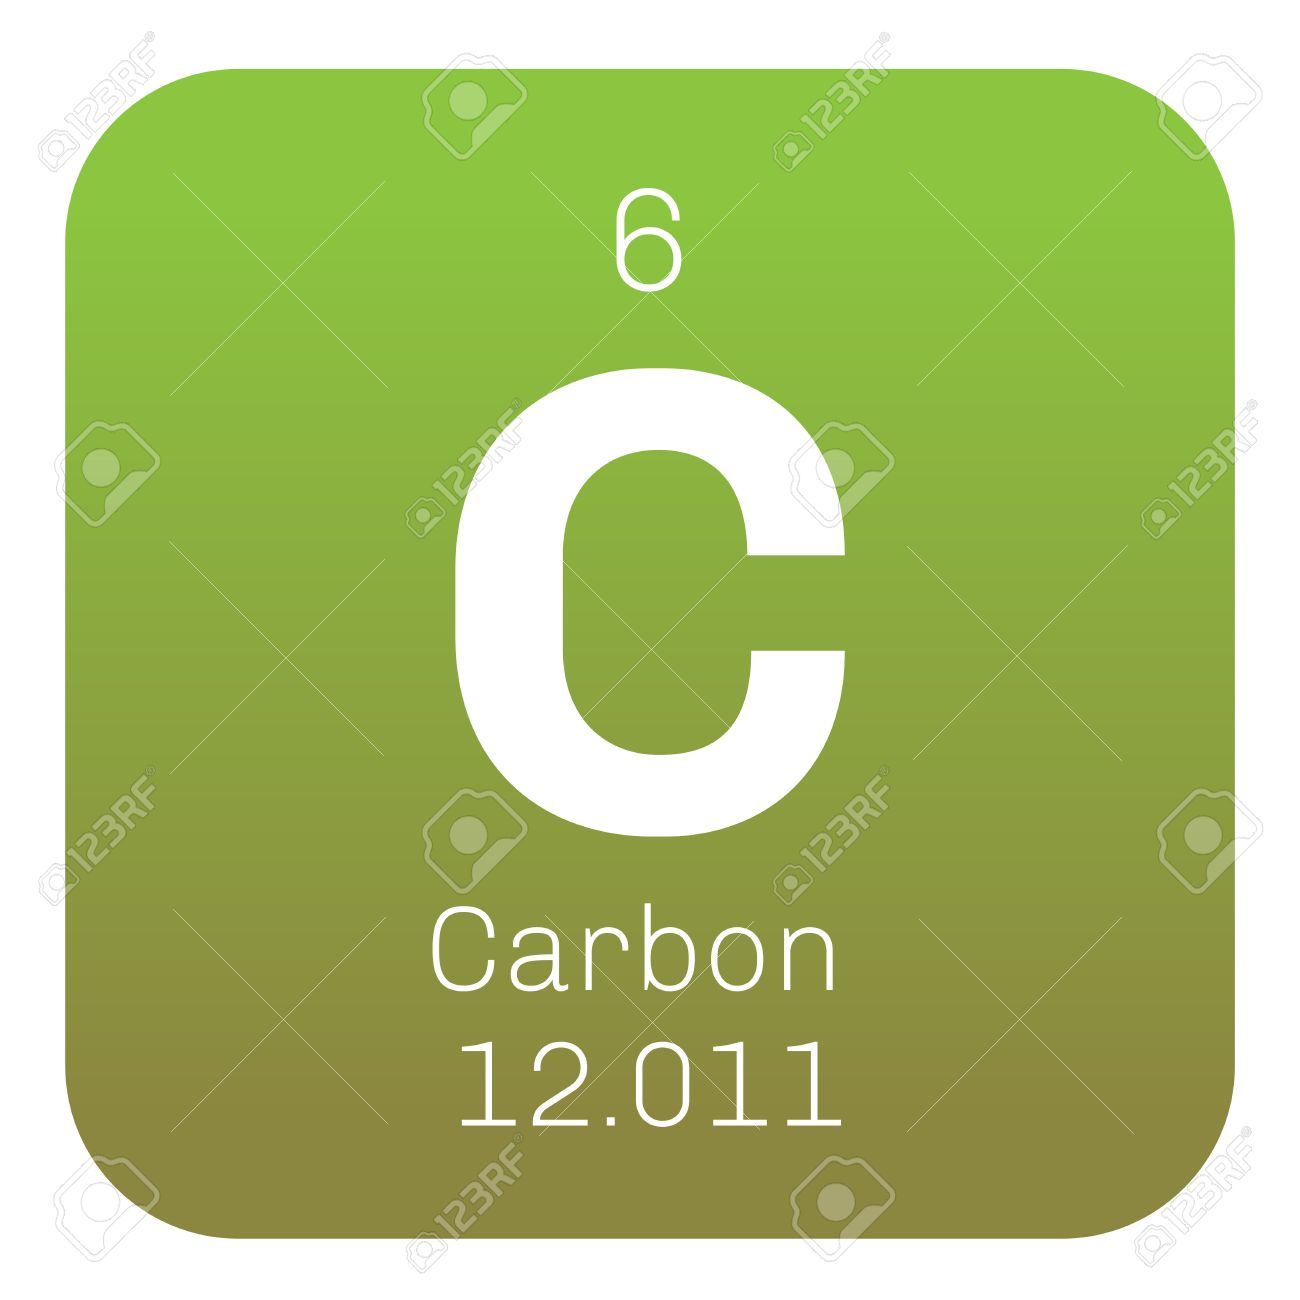 Carbon chemical element graphite and diamond colored icon with carbon chemical element graphite and diamond colored icon with atomic number and atomic weight gamestrikefo Images